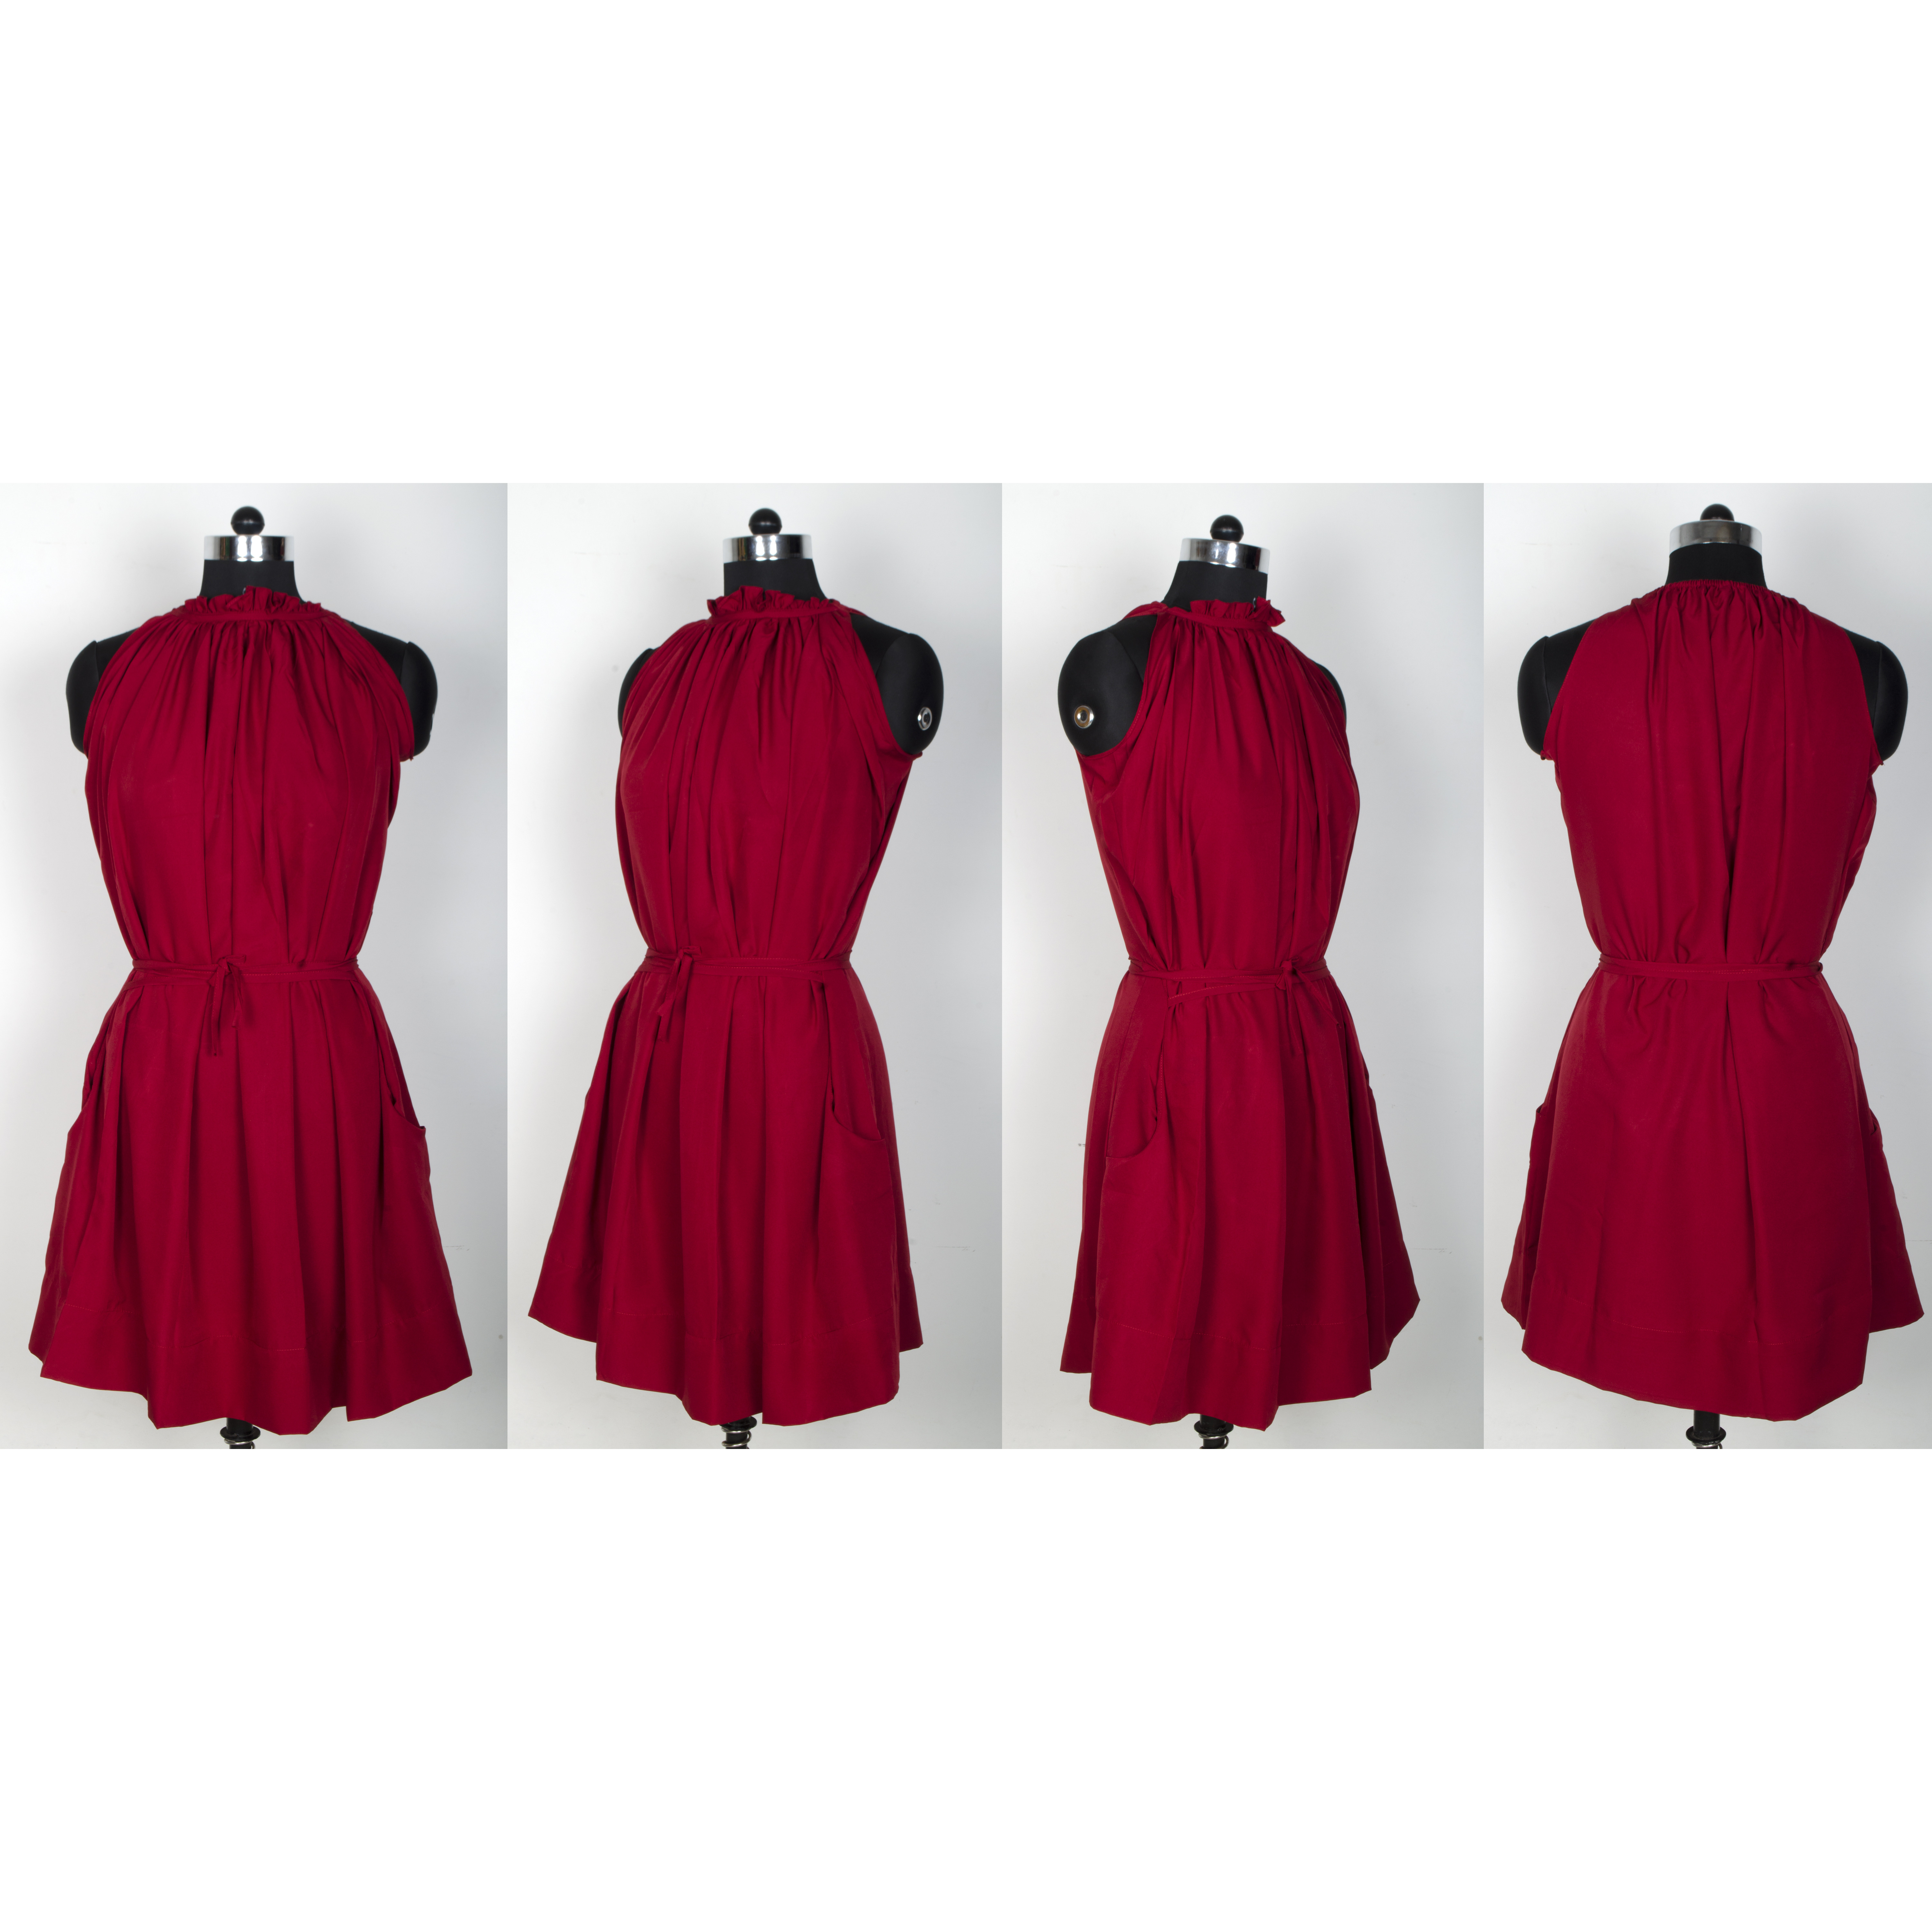 LemonQ  Crepe Fabric Exclusive Sleeveless & Round Neck Designer Maroon Skater